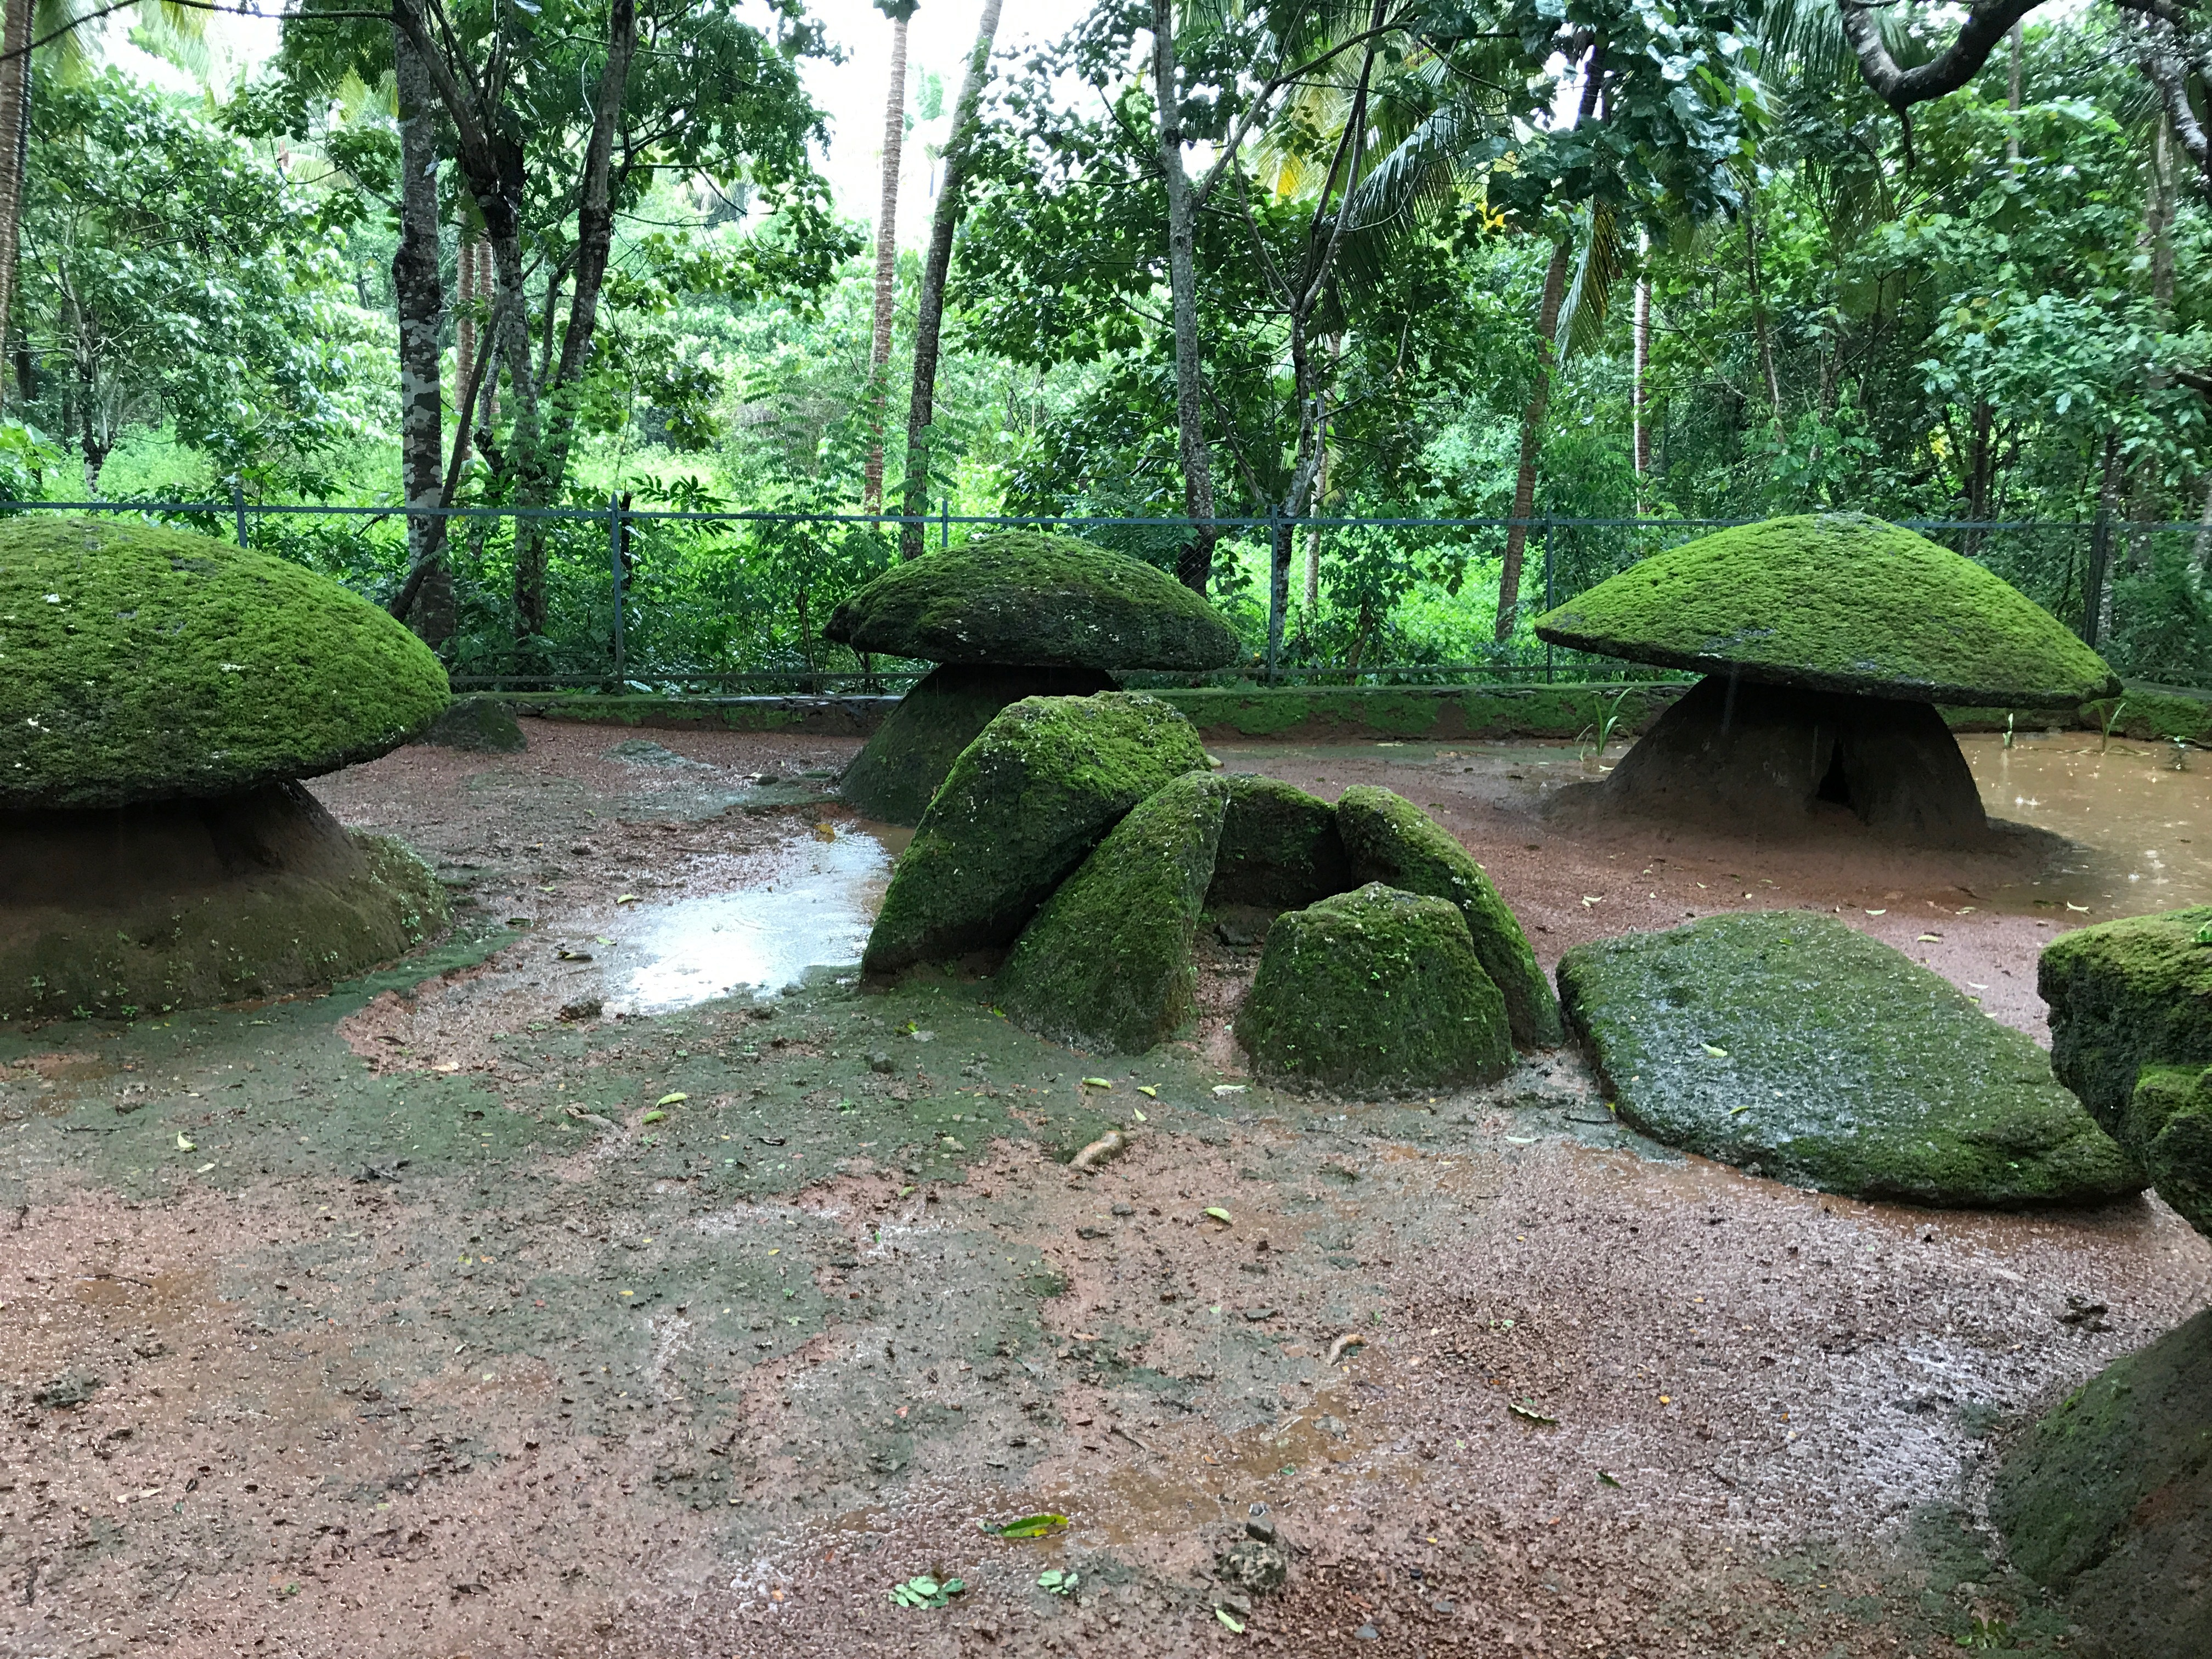 Kerala Society and Culture: Ancient and Medieval